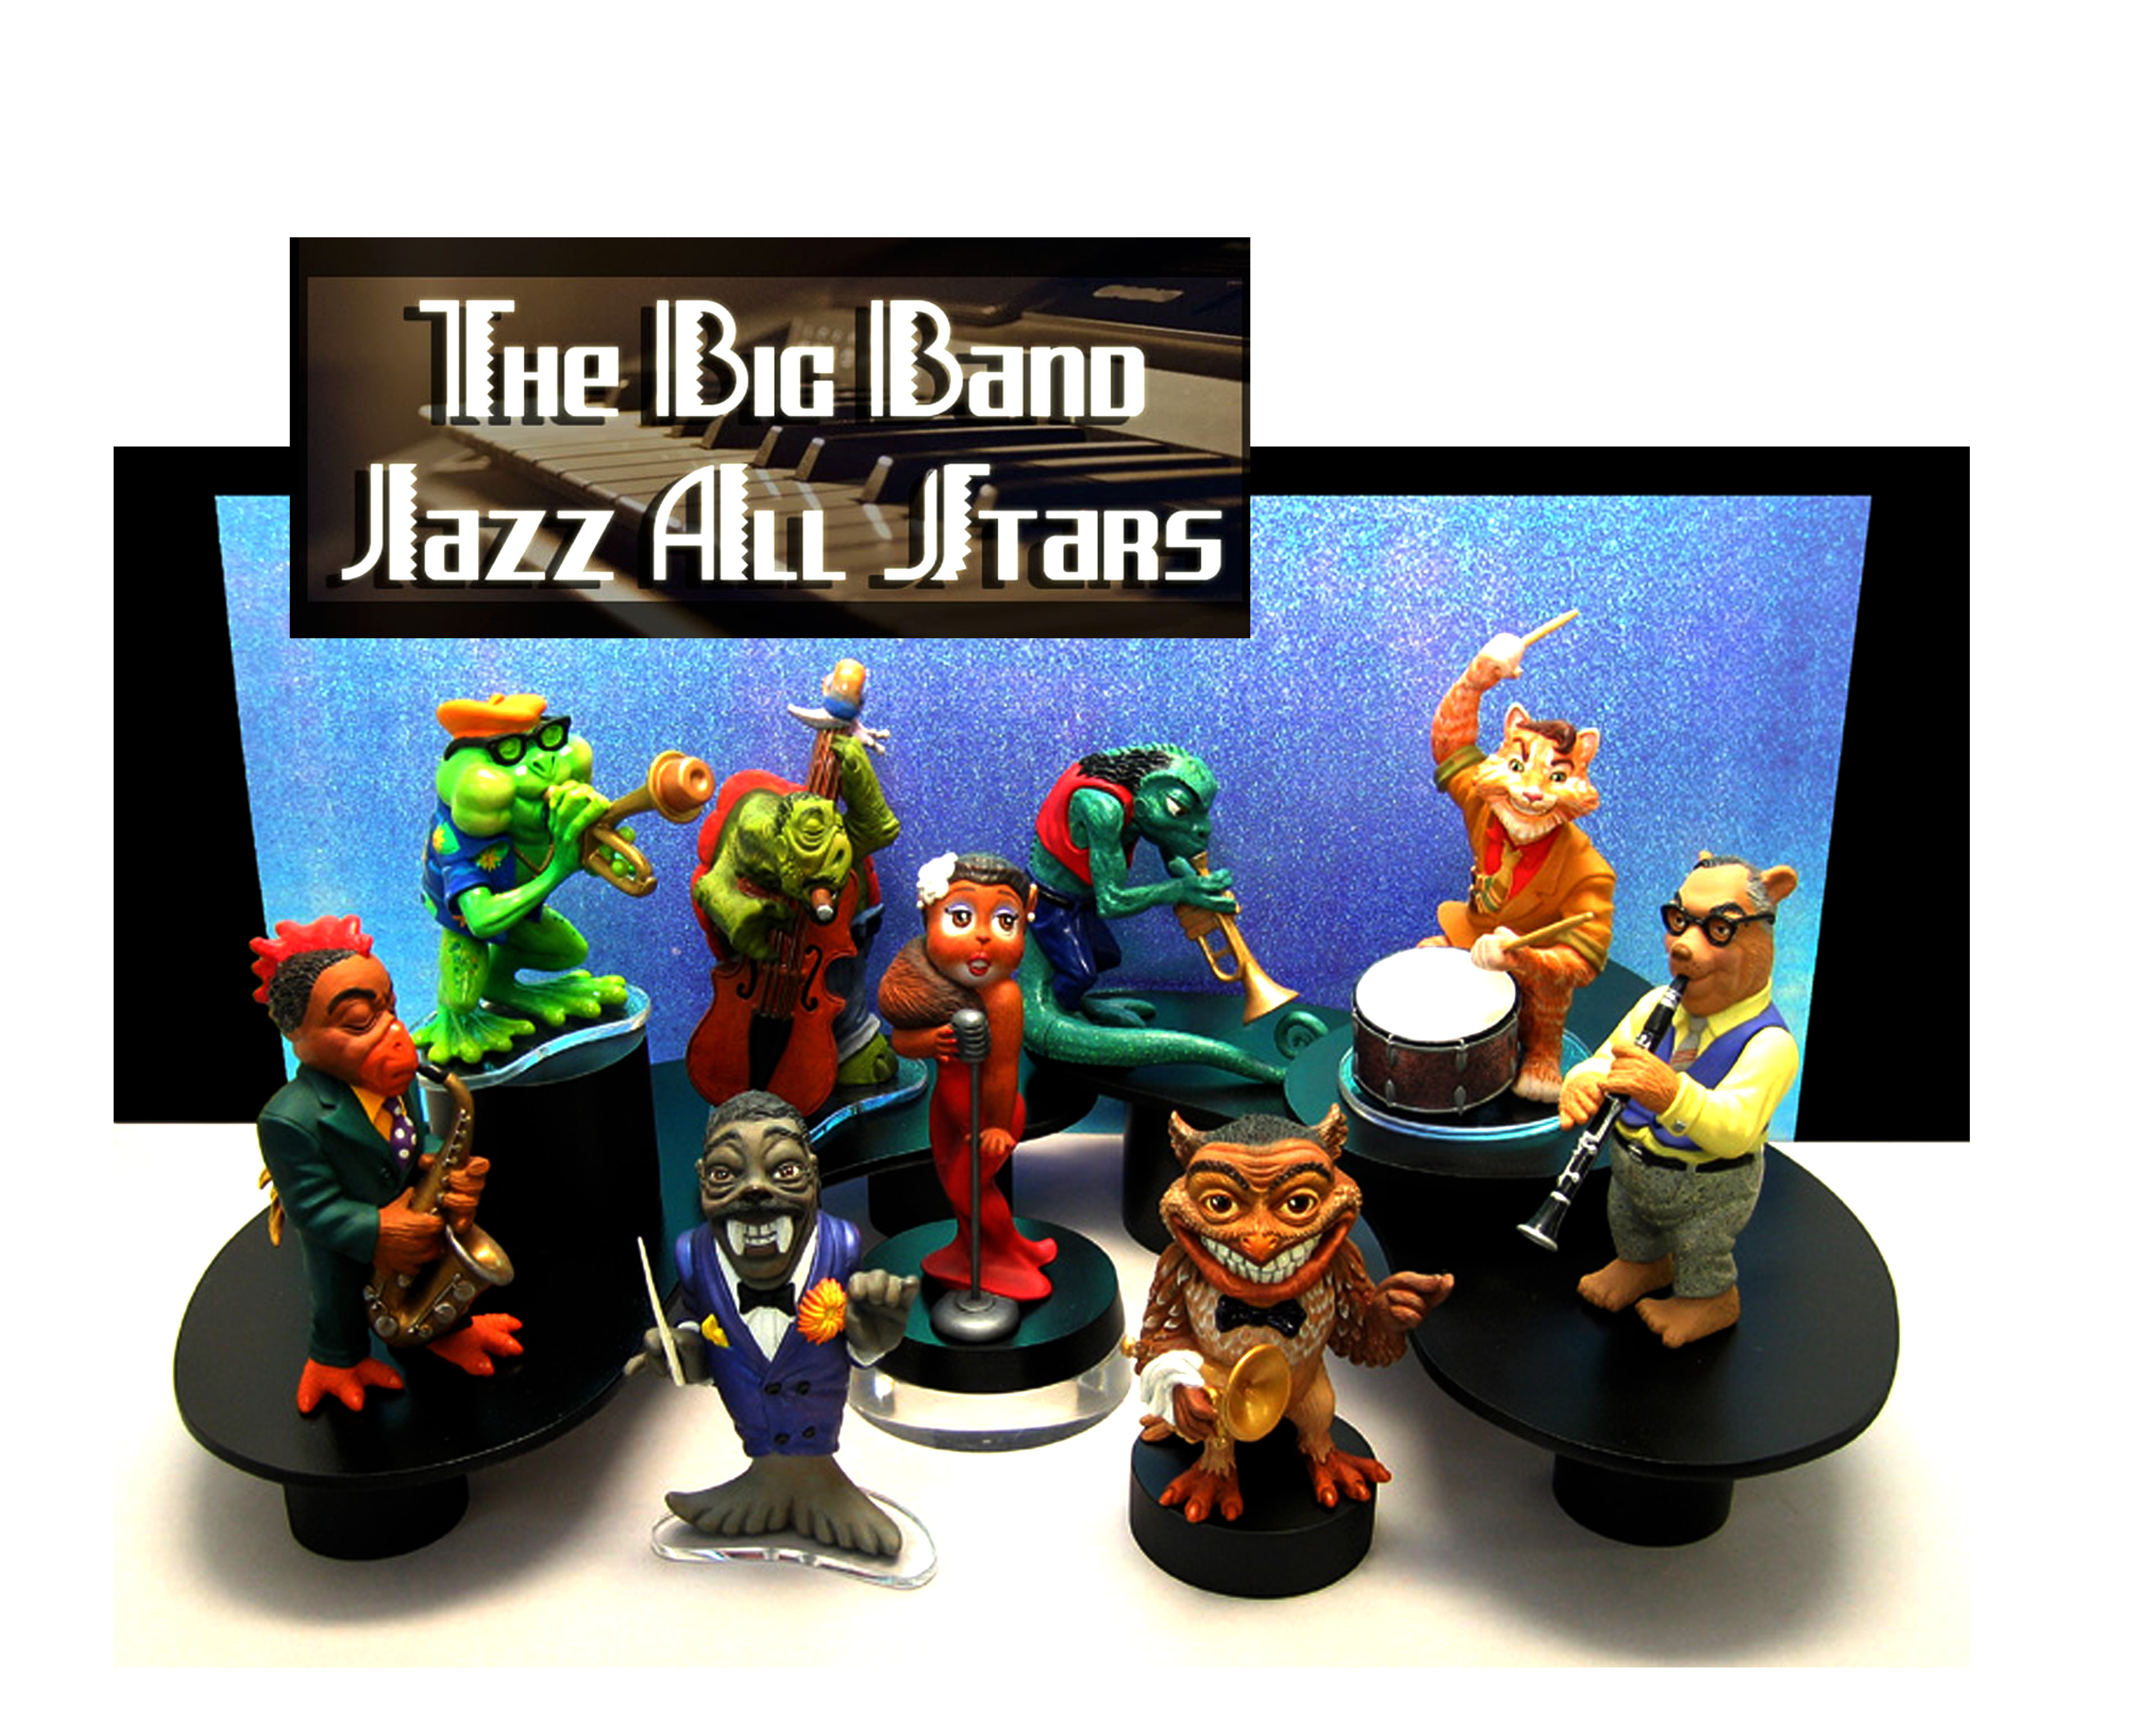 the Big Band Jazz Allstars original Studio designs, never produced